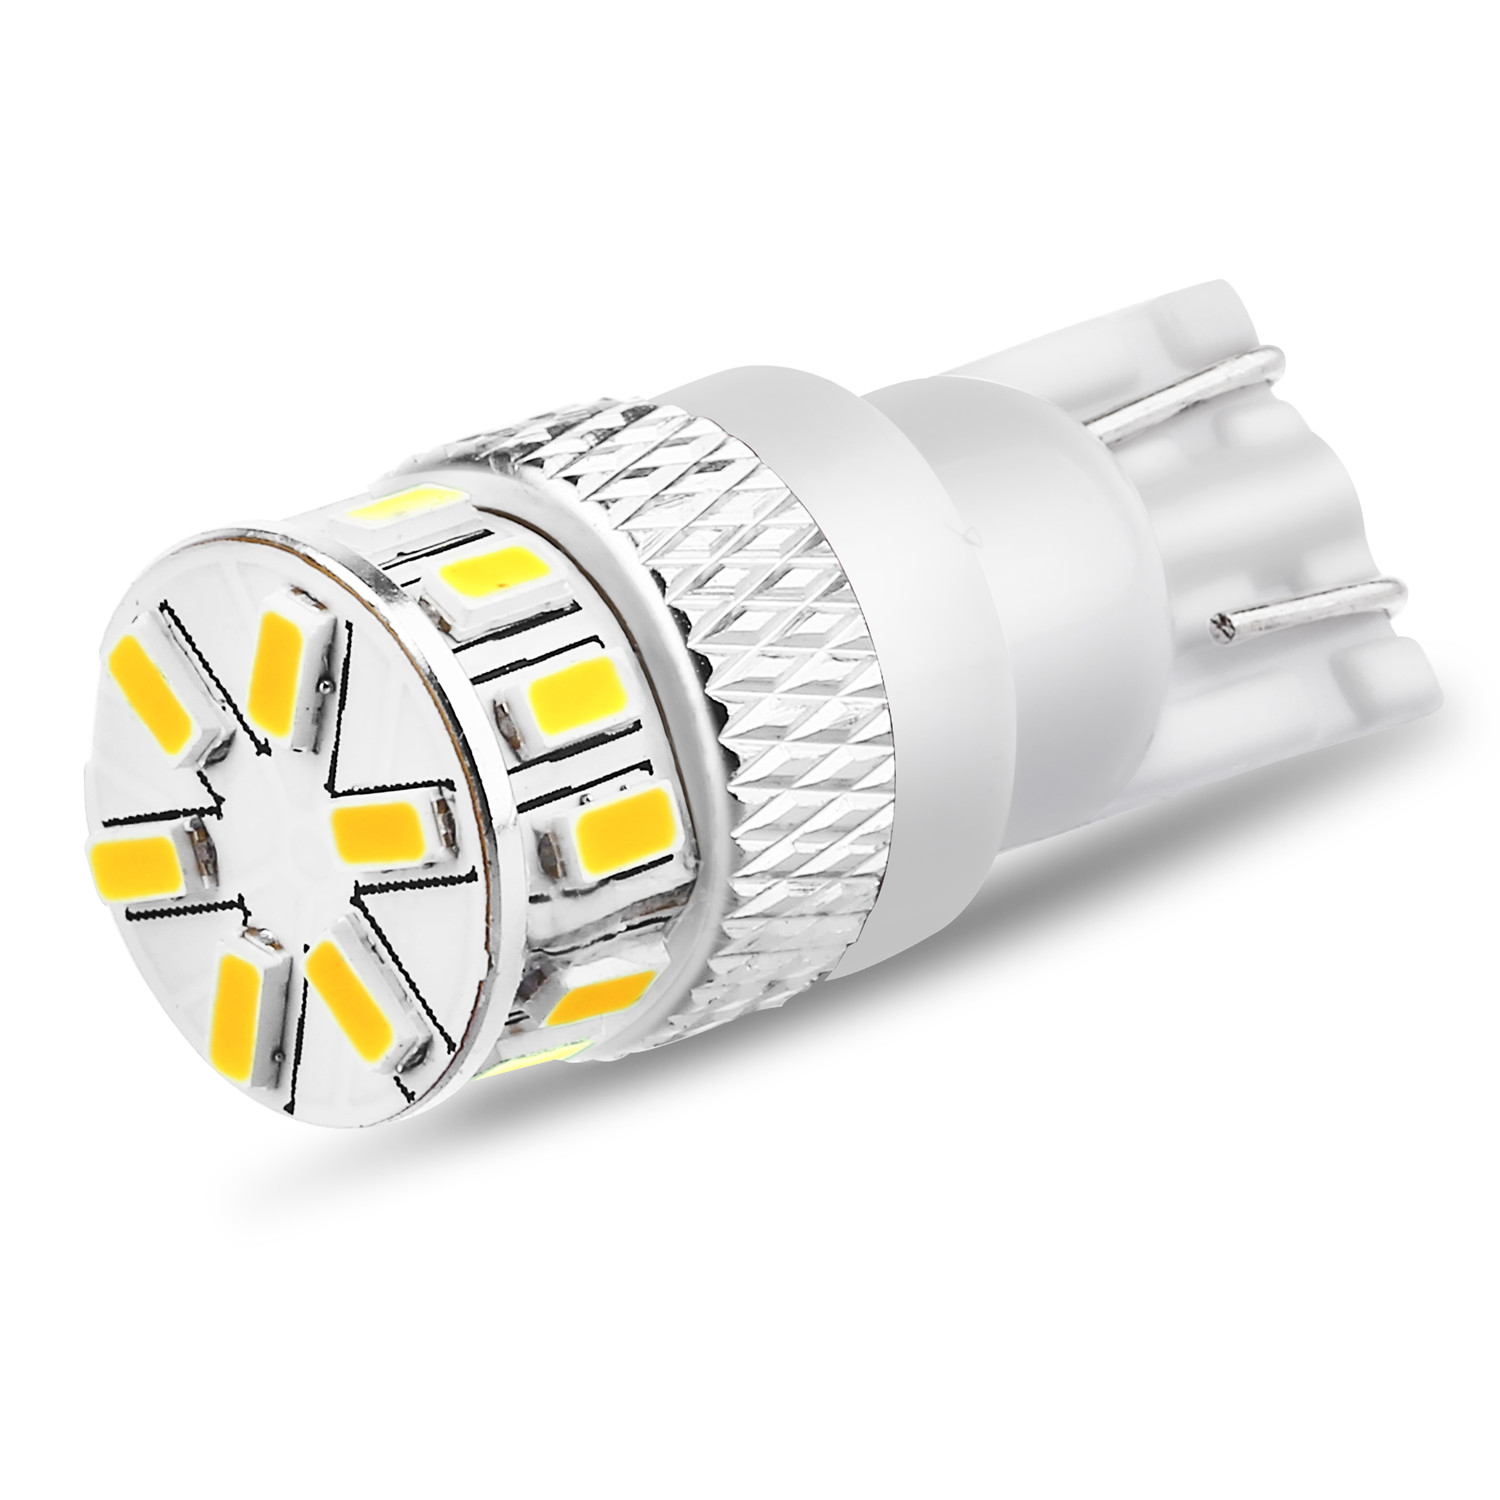 2010 Jeep Commander LED License Plate Light Bulb 168 12V White